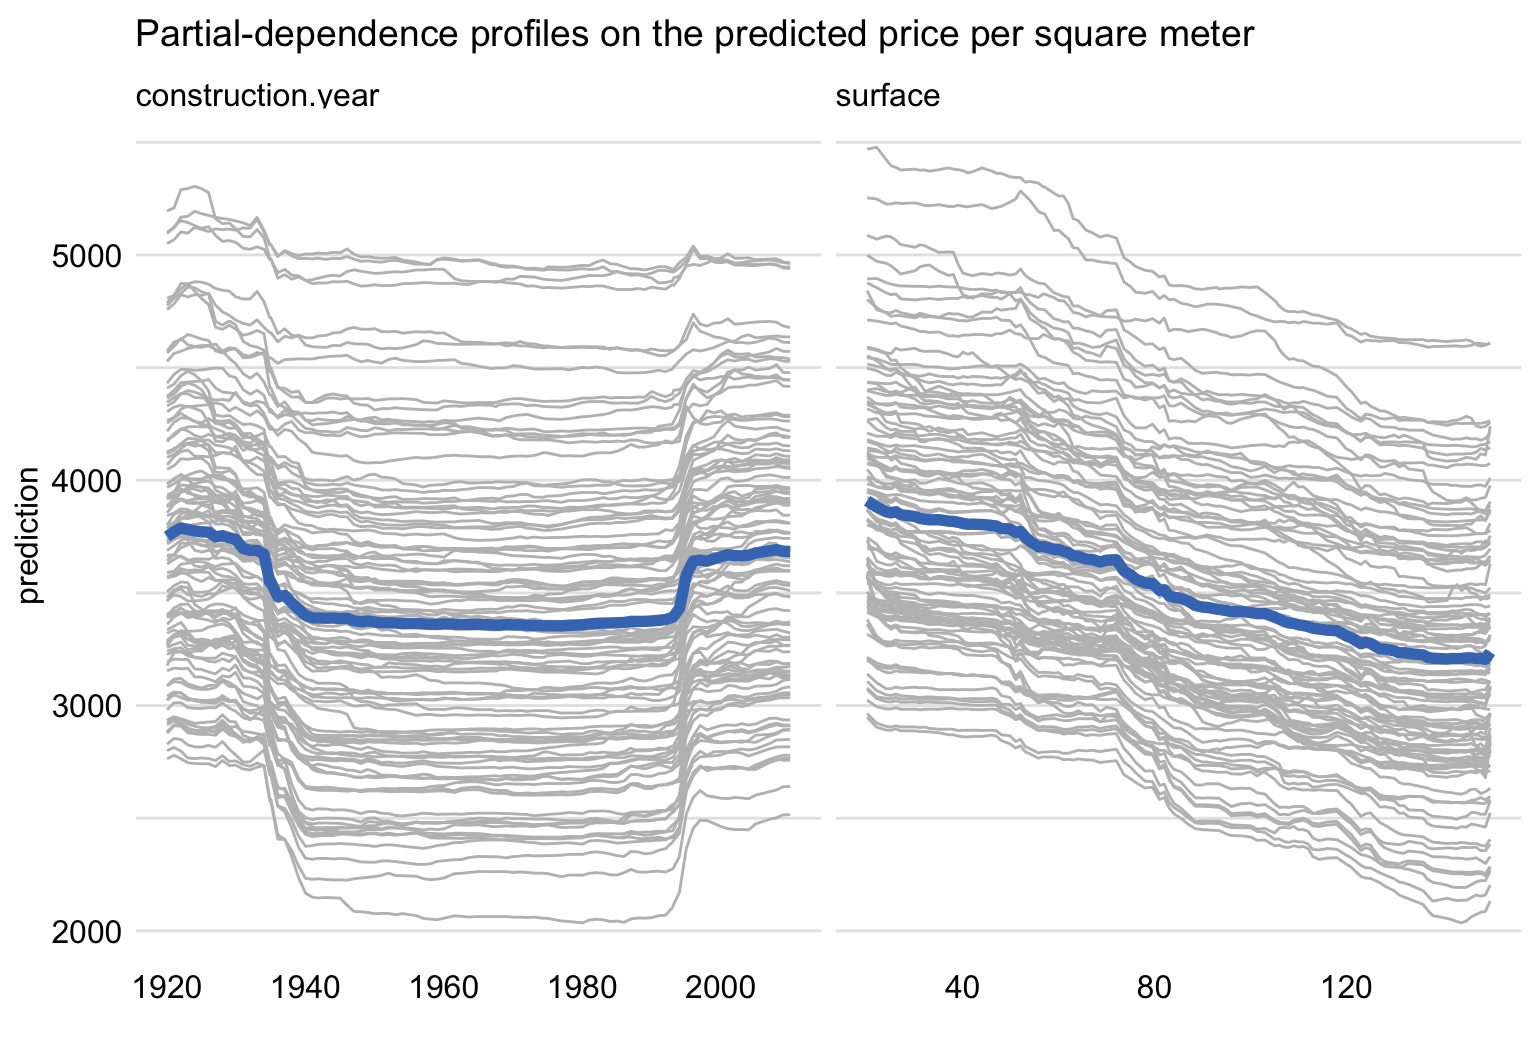 Ceteris-paribus and partial-dependence profiles for construction year and surface for 100 randomly-selected apartments for the random forest model for the apartment-prices dataset.